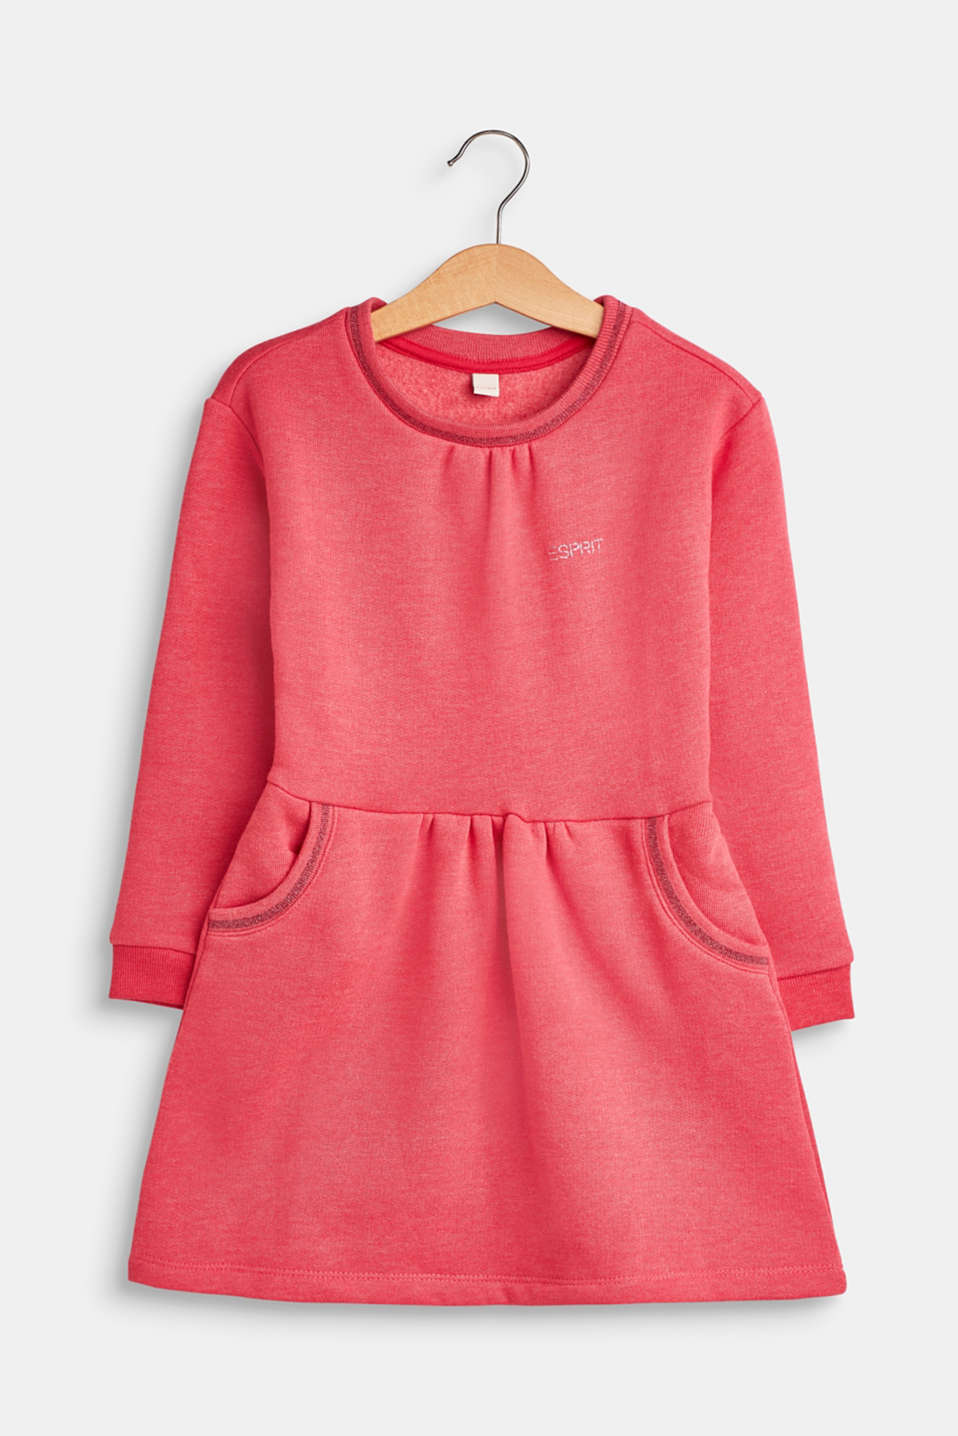 Esprit - Sweatshirt dress with glitter details